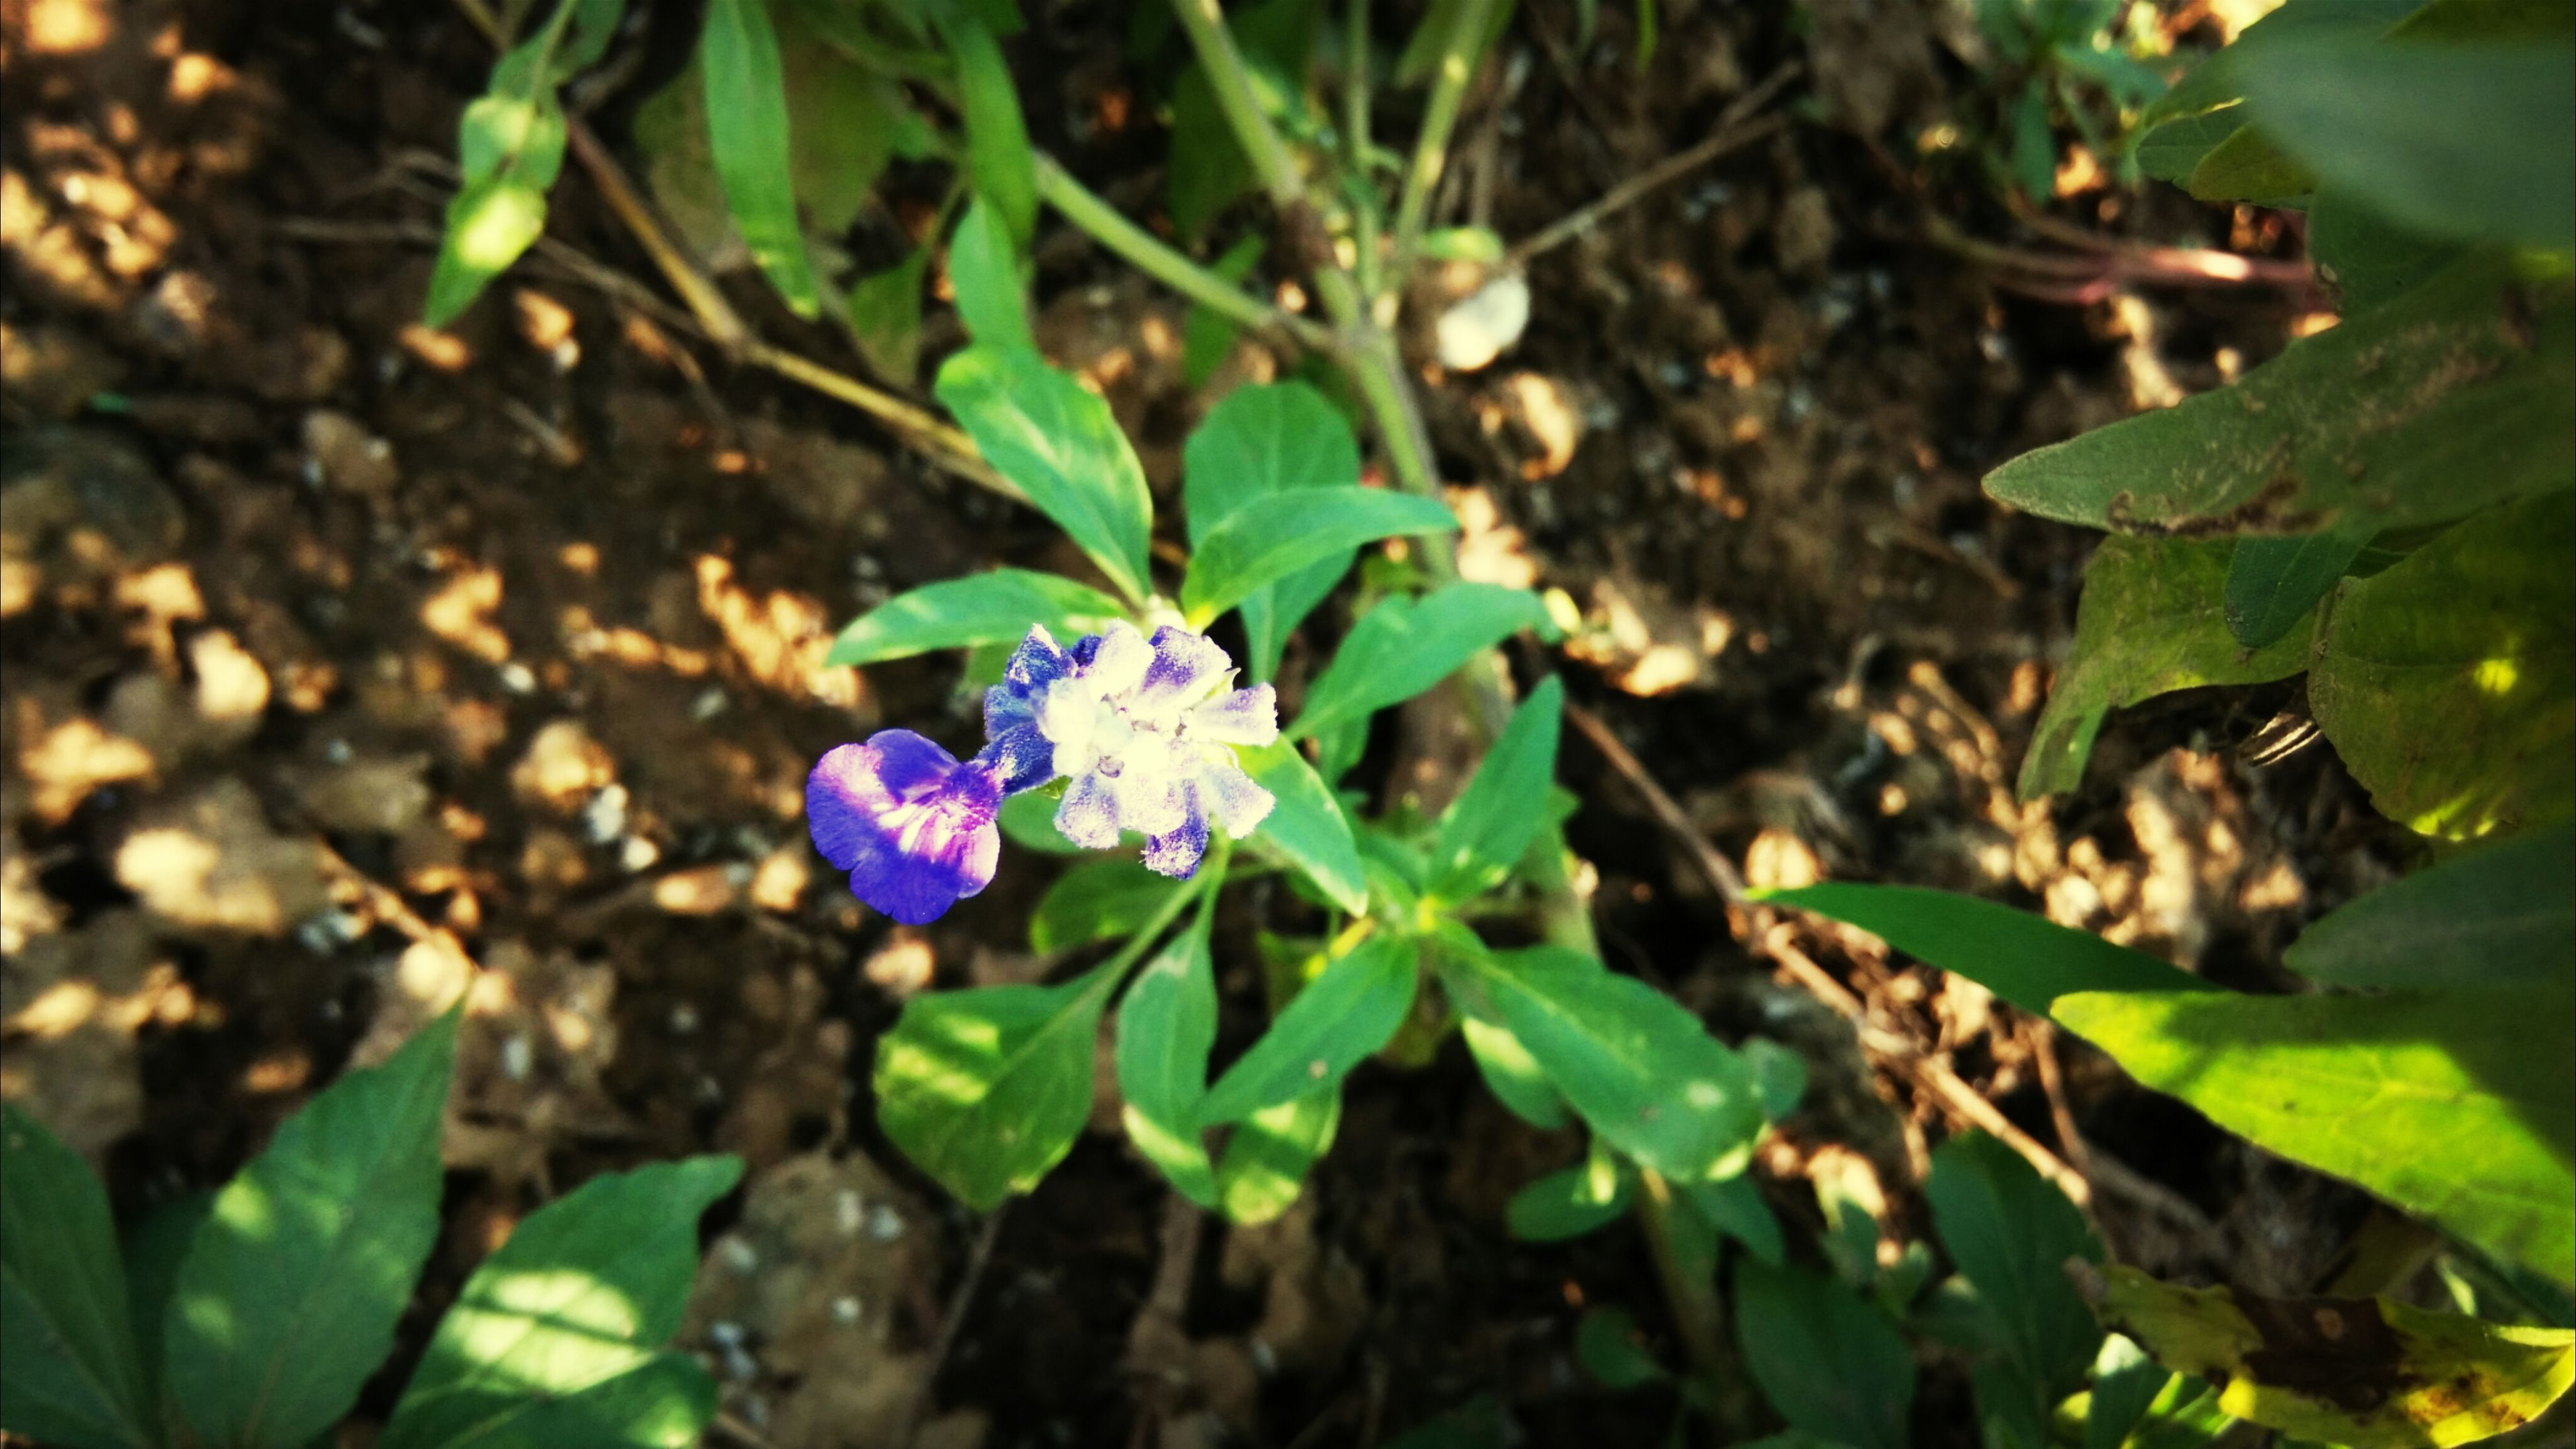 leaf, growth, flower, freshness, plant, green color, purple, beauty in nature, fragility, nature, close-up, high angle view, blooming, petal, focus on foreground, outdoors, day, no people, botany, growing